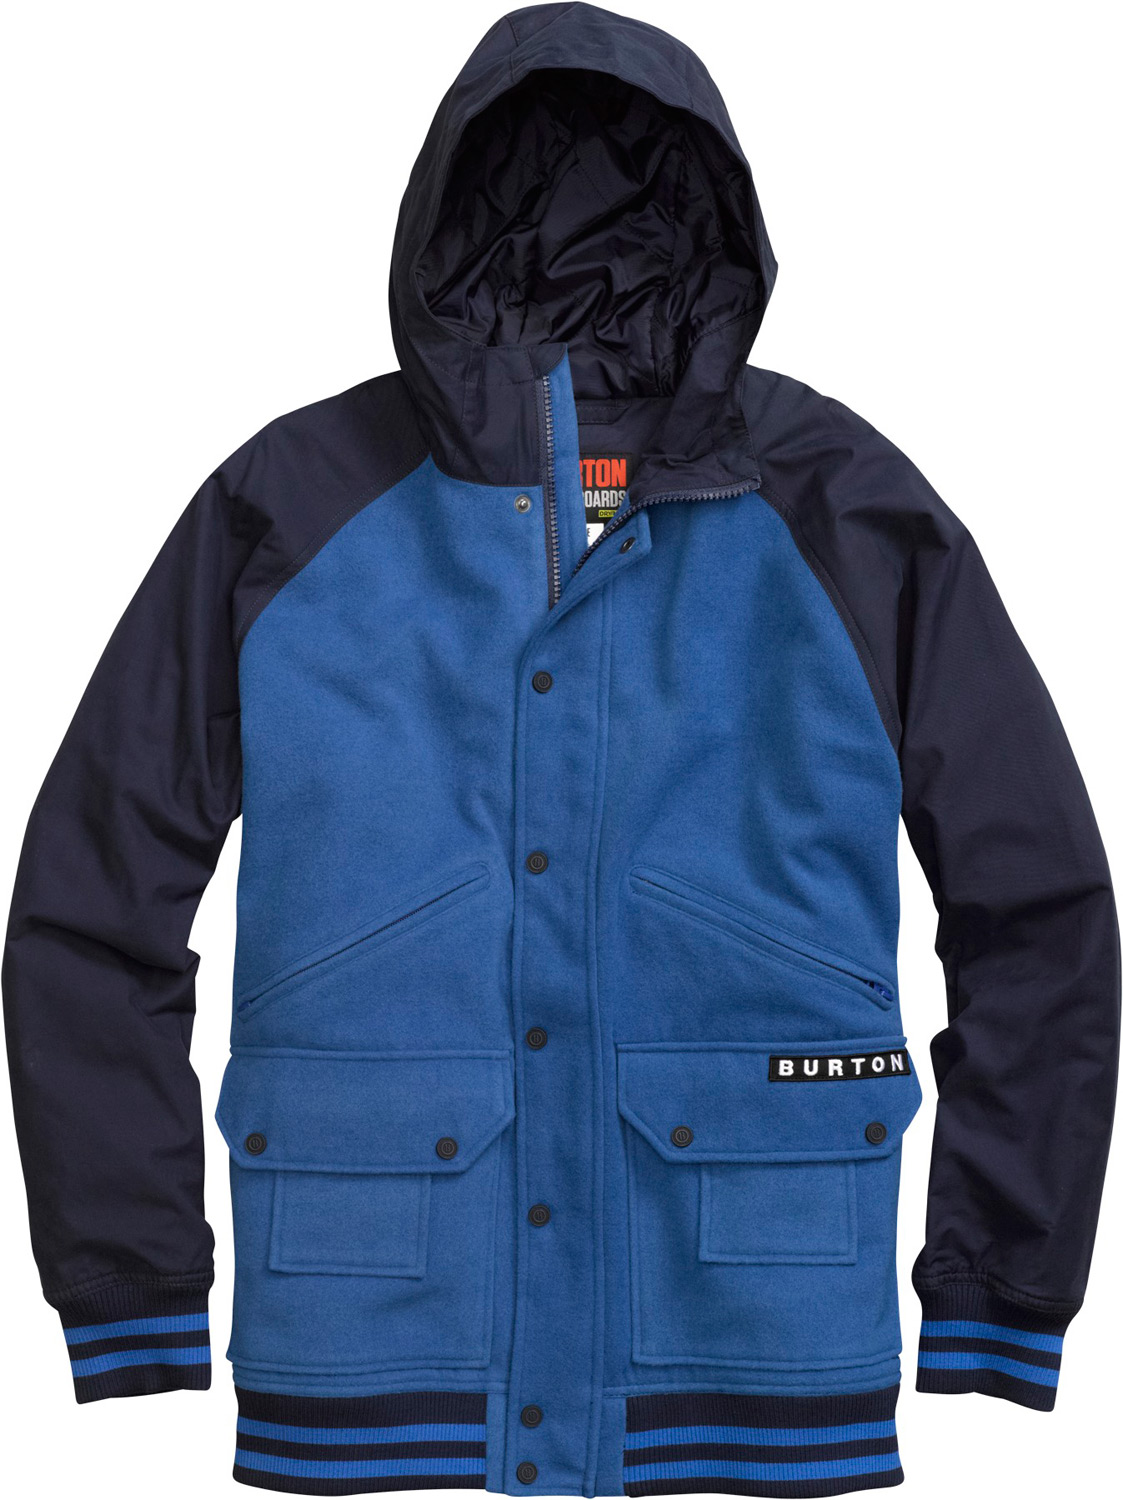 Snowboard Varsity jacket with elemental resistance and a diamond quilted lining.Key Features of the Burton B Side Jacket: Sig Fit DRYRIDE Thermex™ Wool-Like Woven Polyester Body with Cotton/Polyester Blended Sleeves/Hood and Mist-Defy Diamond Quilted Taffeta Lining with Thermacore™ Insulation [100G Body / 60G Sleeves] Zip and Button-Up Center Front Closure Zippered Handwarmer Pockets Interior Sound Pocket Chafe-Free Chin Guard - $119.95